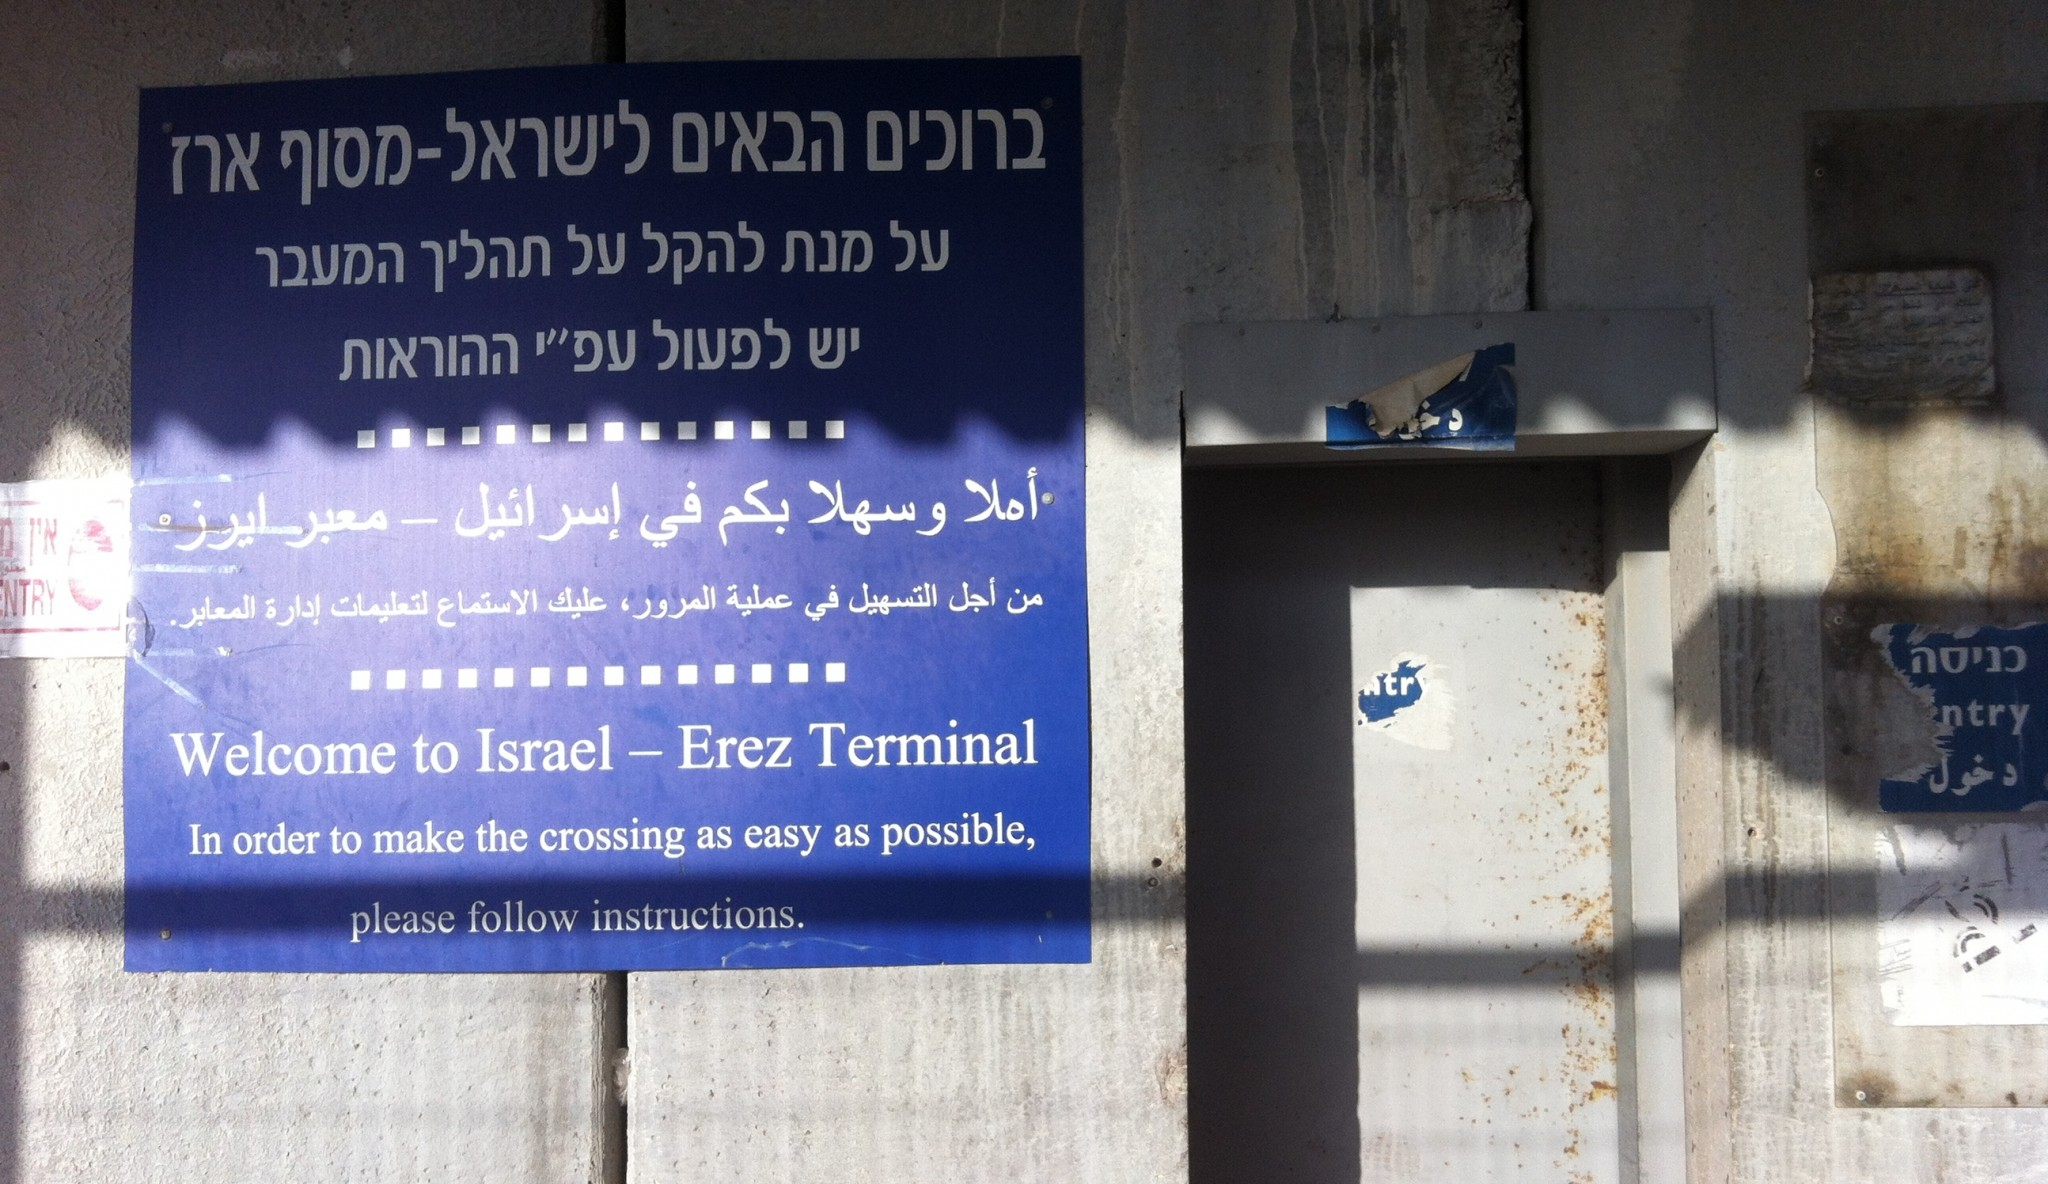 Some of movement restrictions impacting residents of Gaza date back to the early 90s. Other restrictions – like banning students from Gaza from studying in the West Bank or not allowing residents of Gaza to relocate to the West Bank – were introduced in 2000. Erez Crossing. Photo: Nuriya Oswald